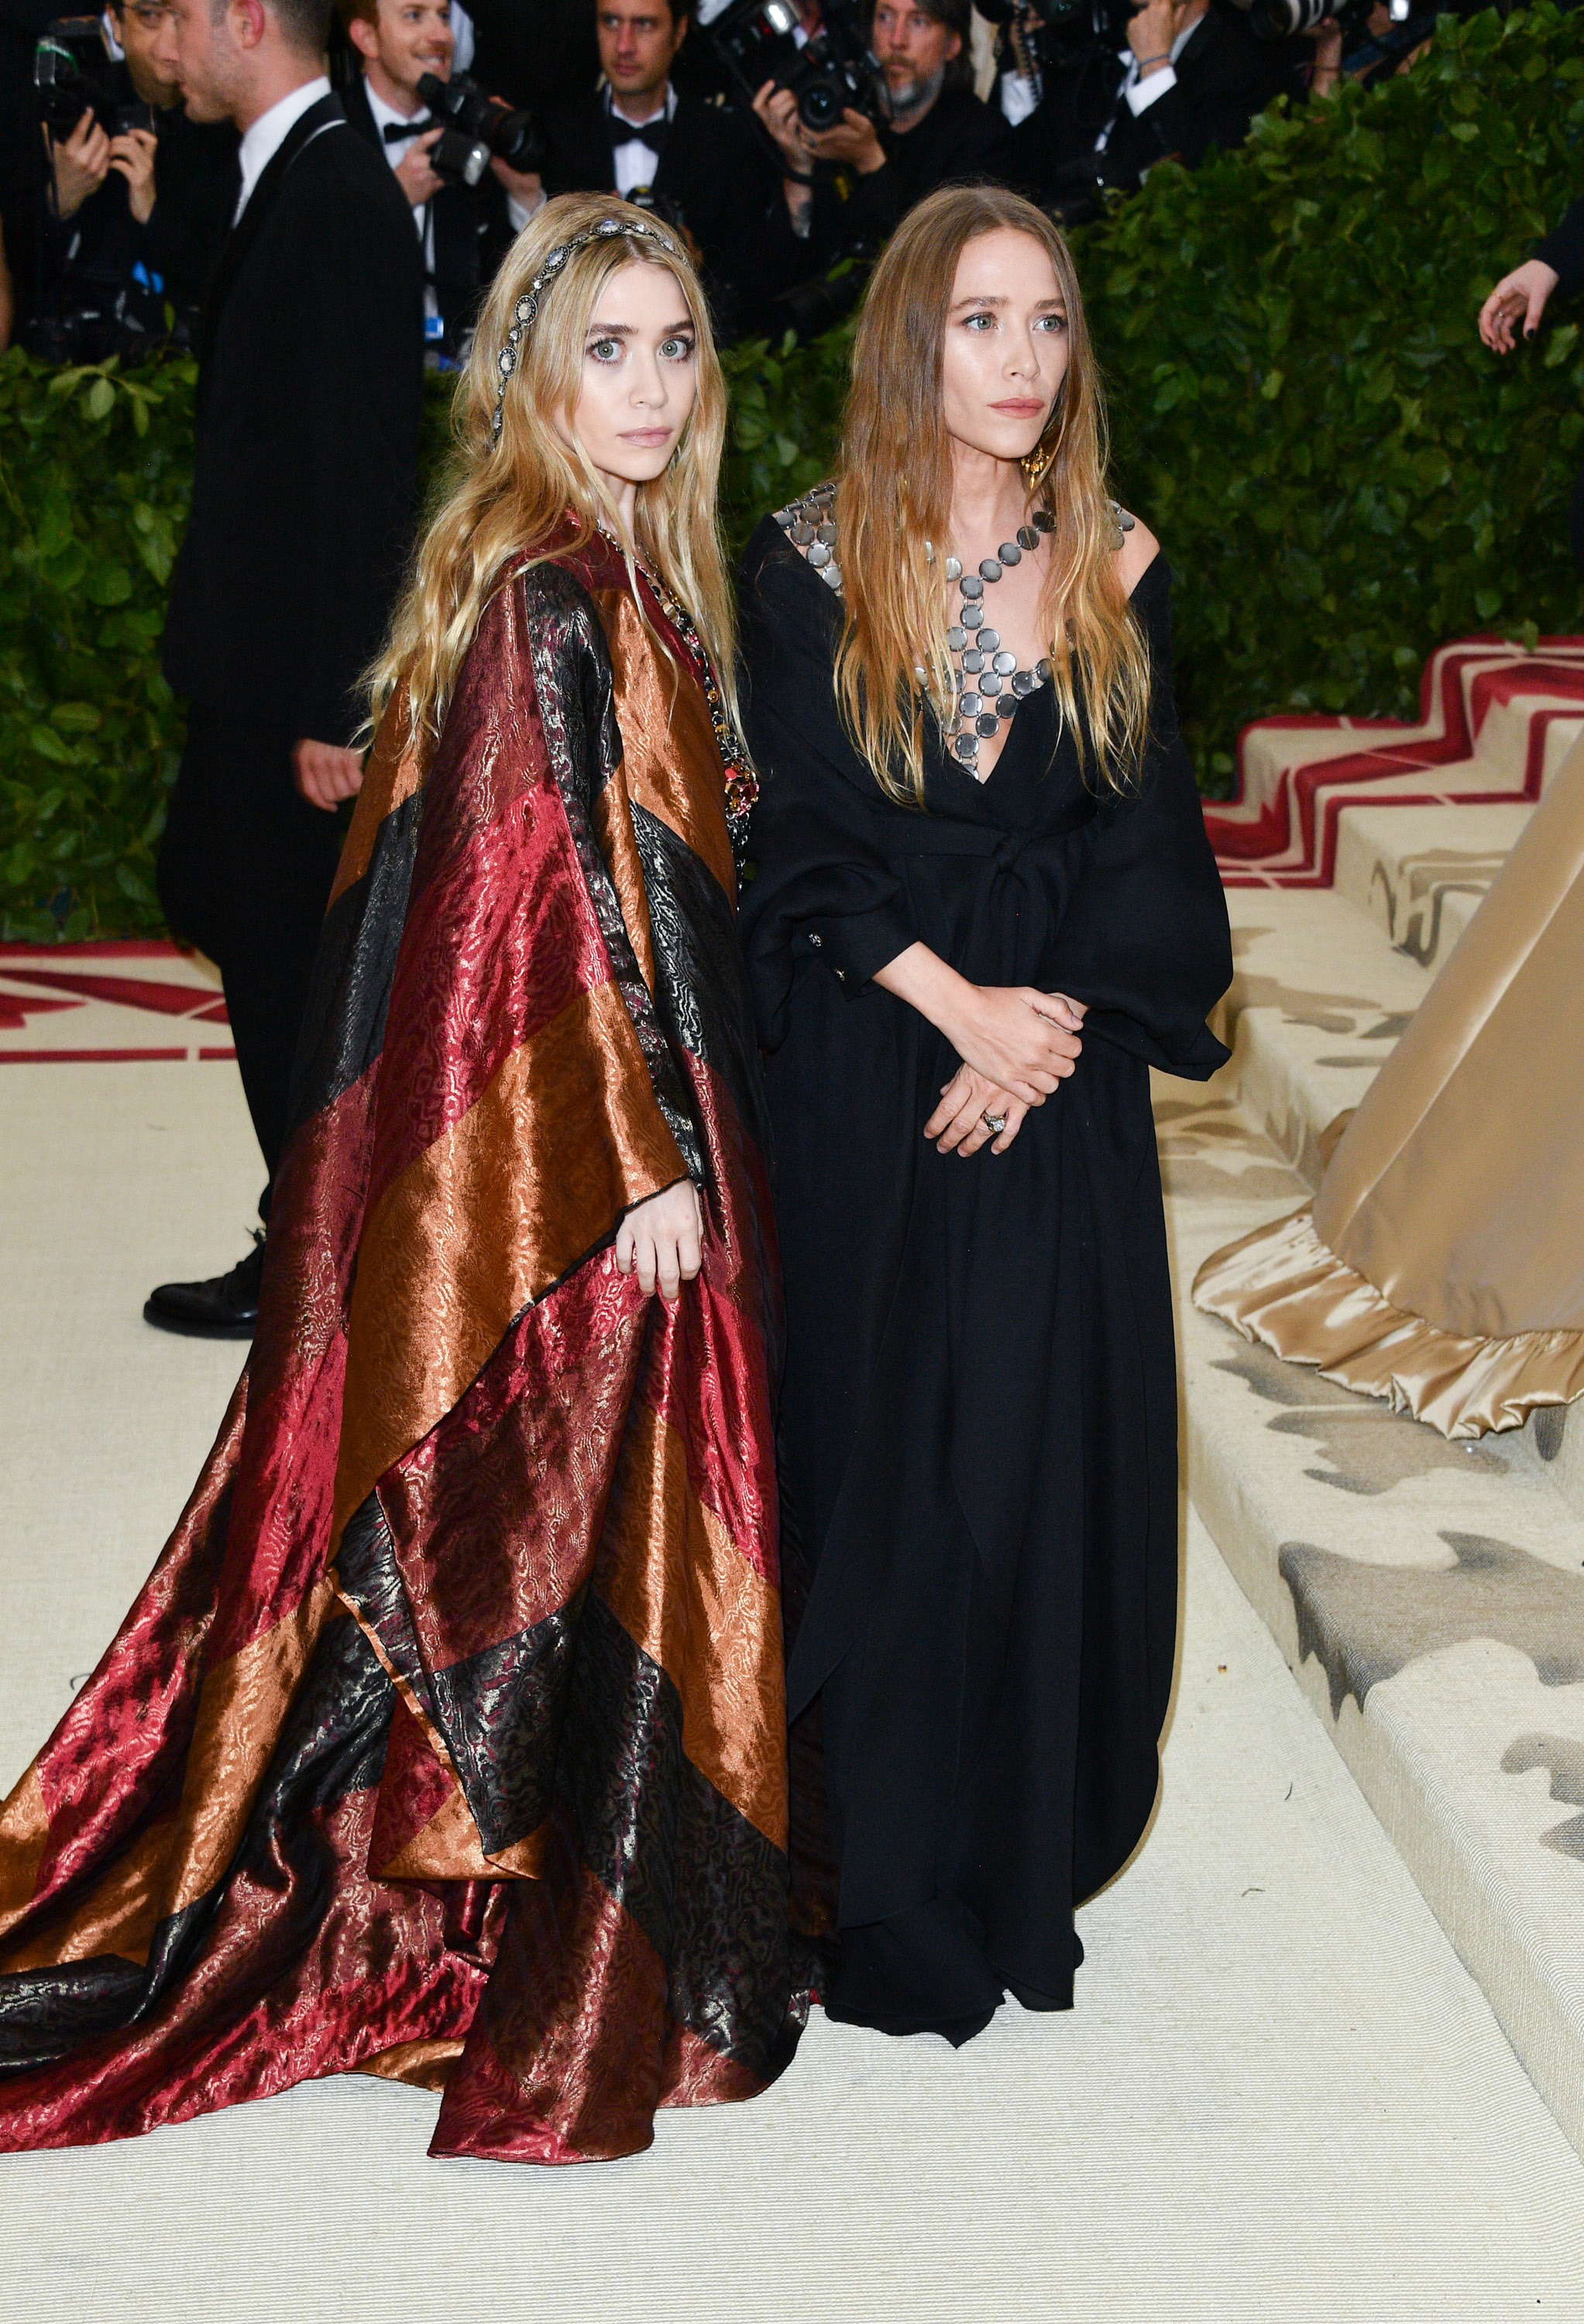 Ashley Olsen (L) and Mary-Kate Olsen attend the Heavenly Bodies: Fashion & The Catholic Imagination Costume Institute Gala at the Metropolitan Museum of Art on May 7, 2018 in New York City. (Photo by George Pimentel/Getty Images)